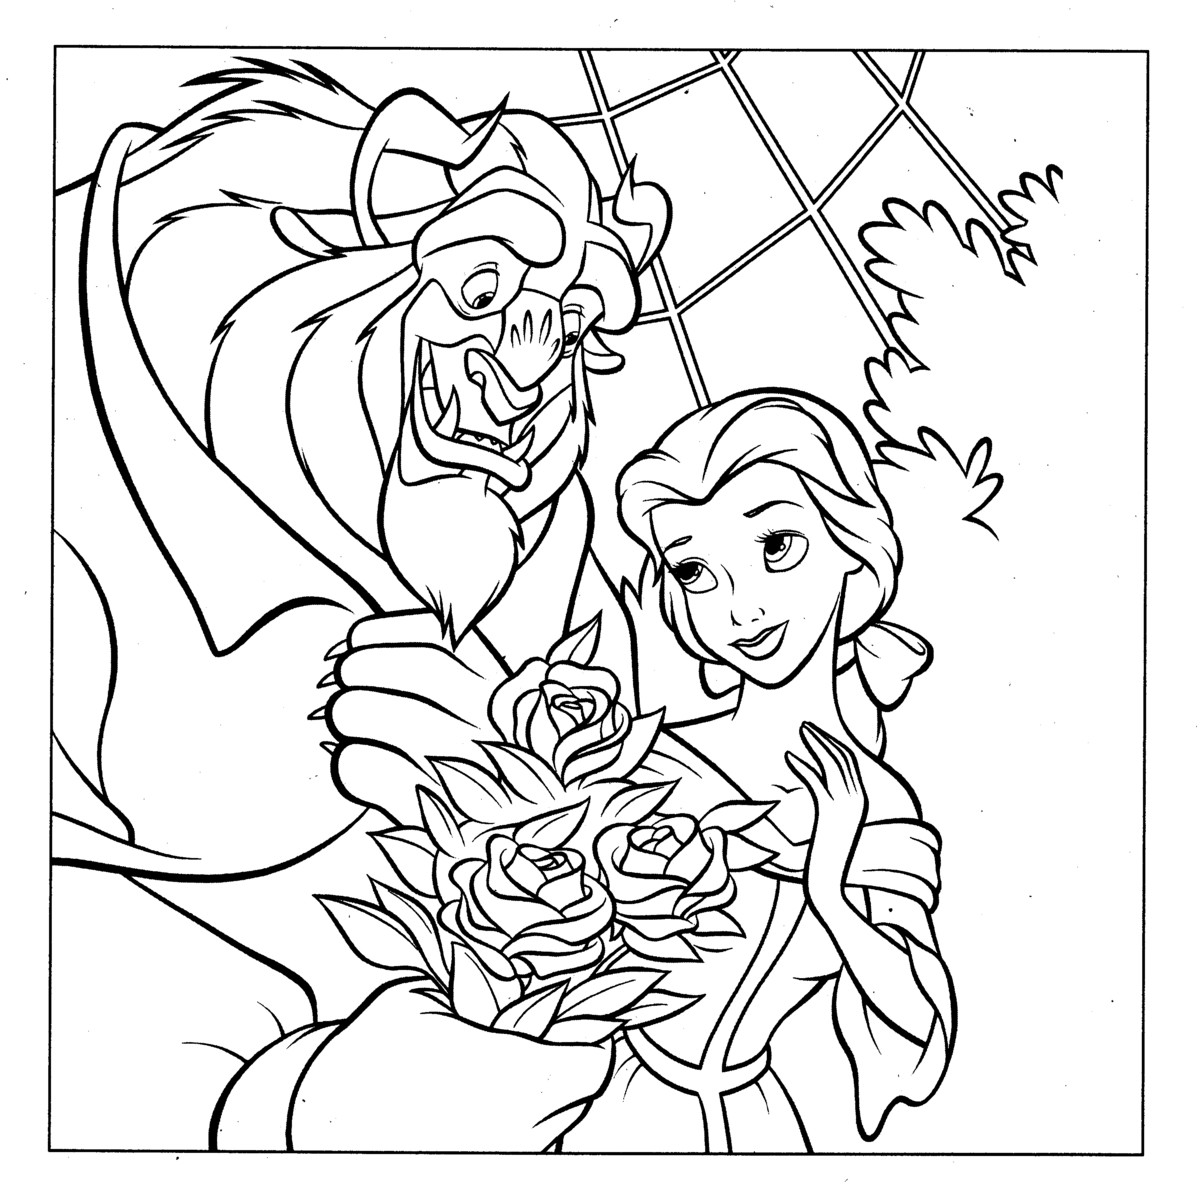 Princess Coloring Pages (25)